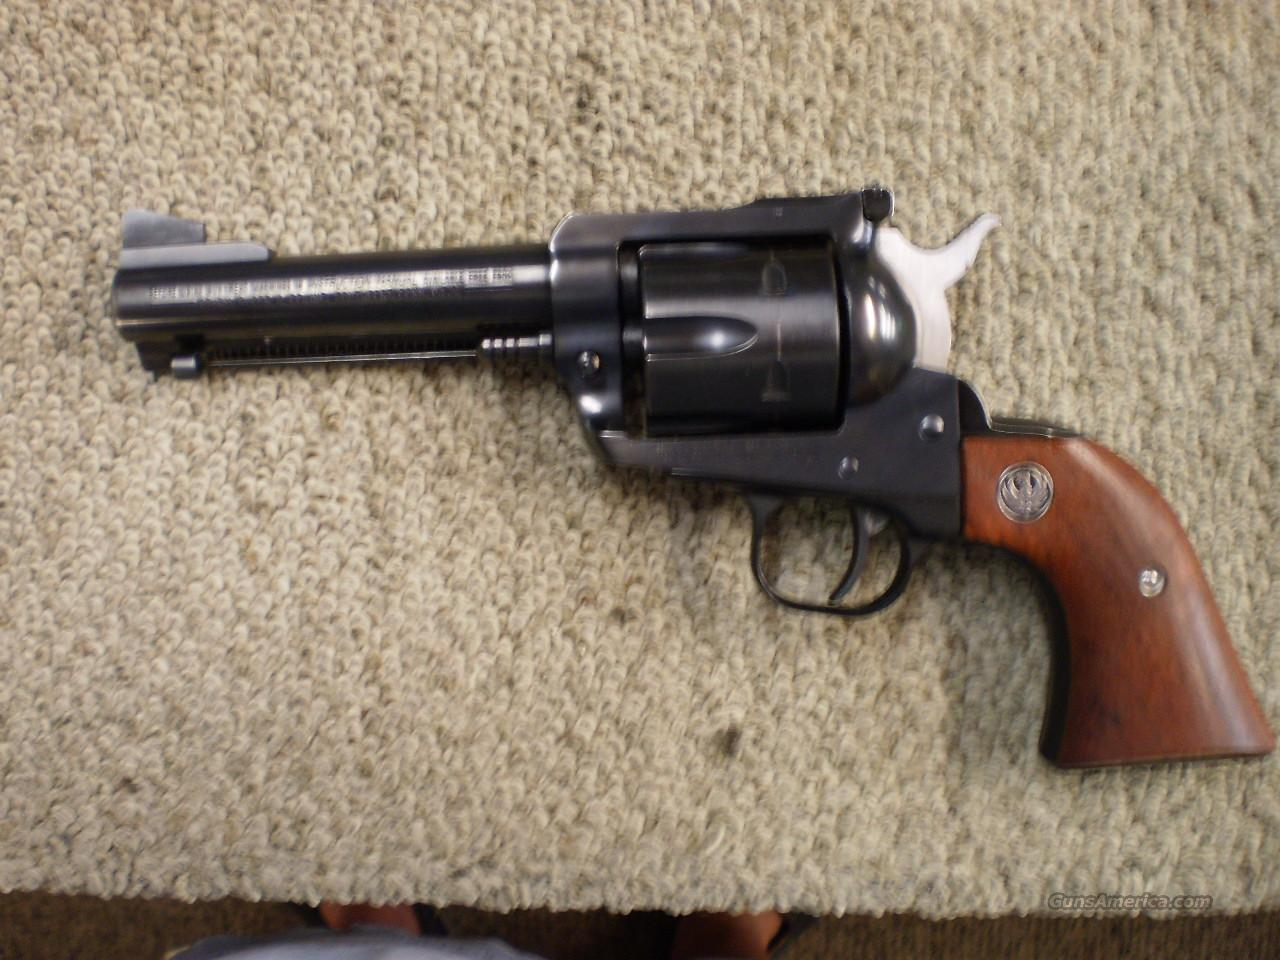 RUGER BLACKHAWK 357 MAGNUM  Guns > Pistols > Ruger Single Action Revolvers > Blackhawk Type